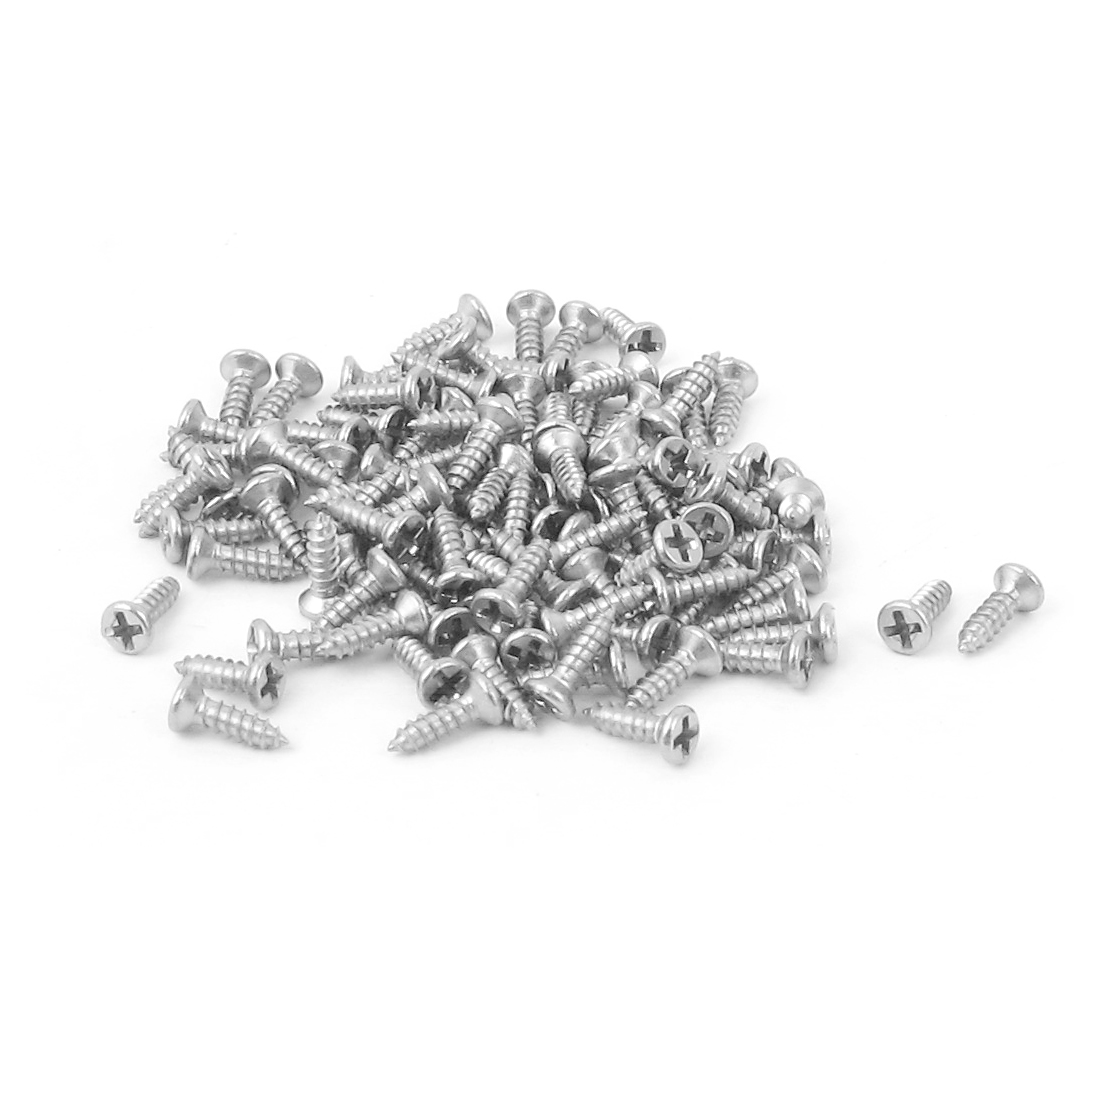 M1.4 x 5mm Phillips Flat Head Self Tapping Screw Fasteners 100 Pcs